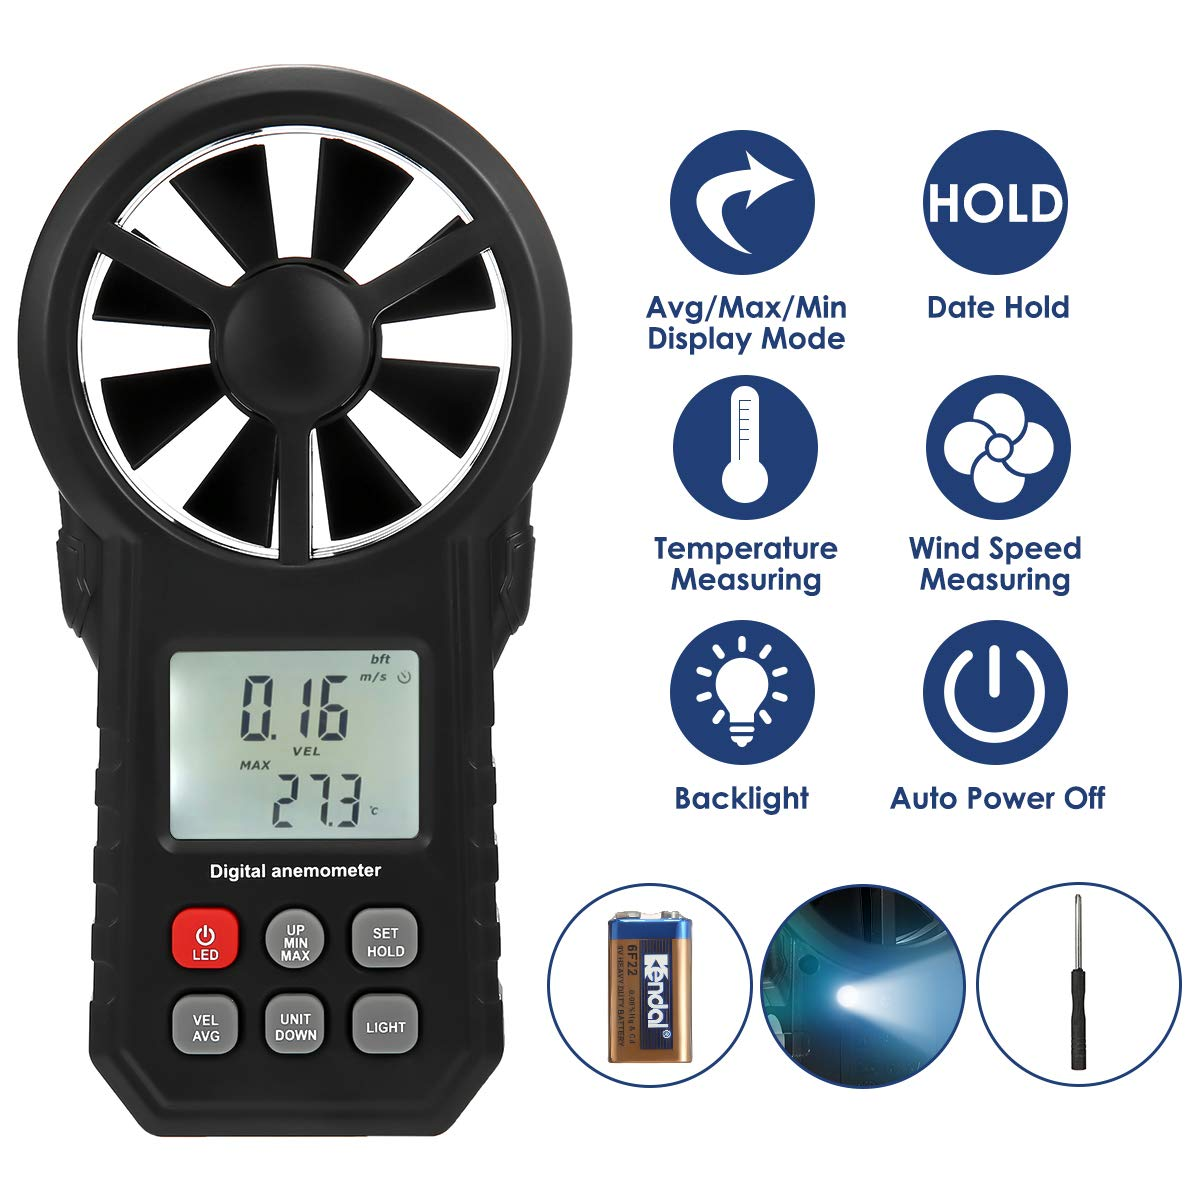 LIUMY Handheld Anemometer Digital Wind Speed Meter for Avg|Max|Min Wind Speed, Wind Temperature, Wind Chill with Data Hold, LCD Backlight and Flashlight Suitable for Outdoor Climbing Surfing Fishing